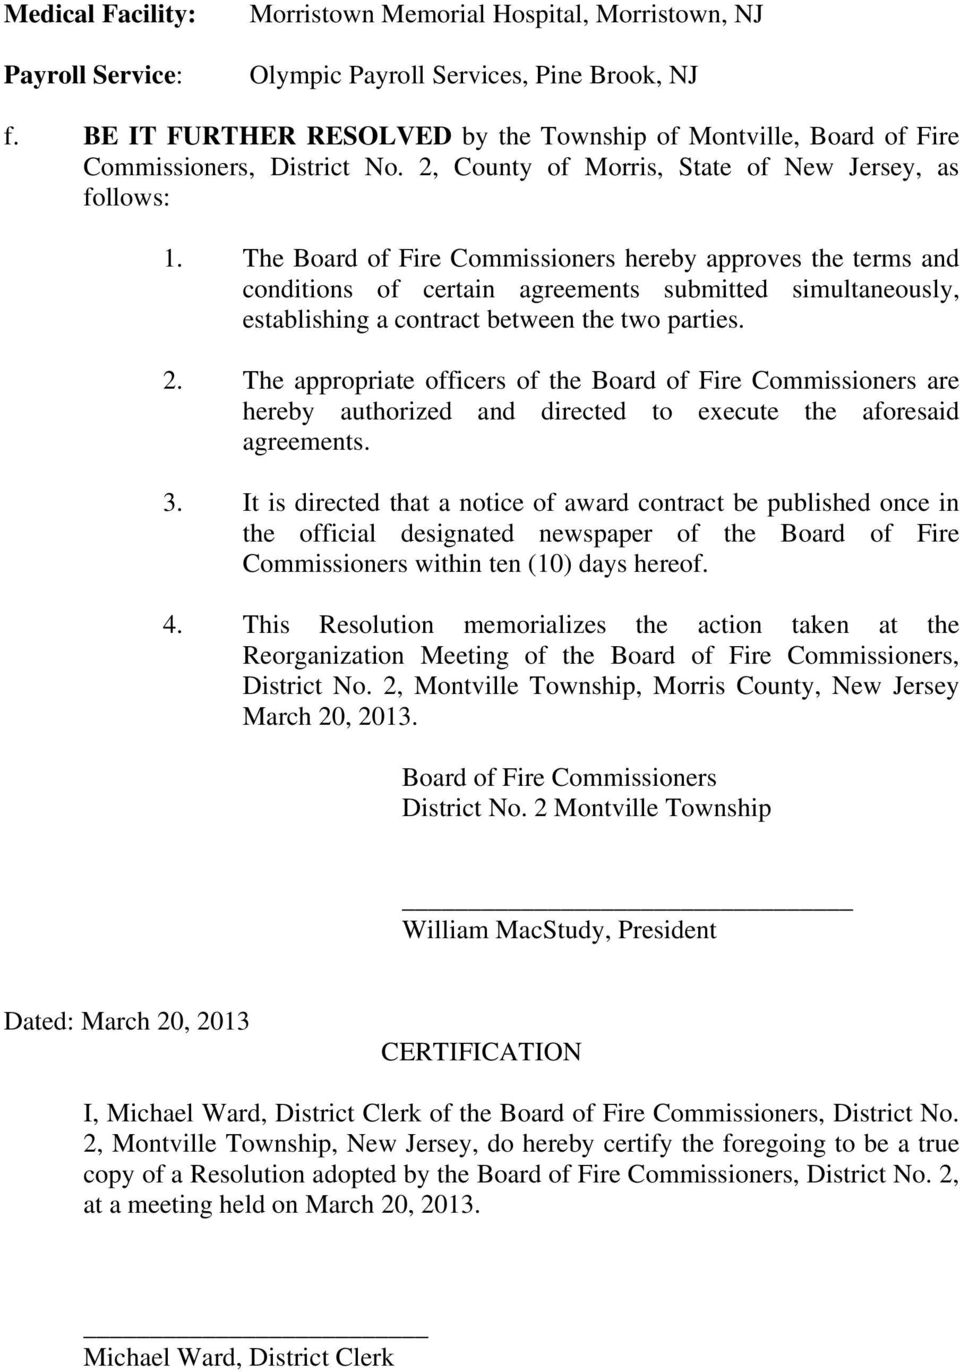 The Board of Fire Commissioners hereby approves the terms and conditions of certain agreements submitted simultaneously, establishing a contract between the two parties. 2.